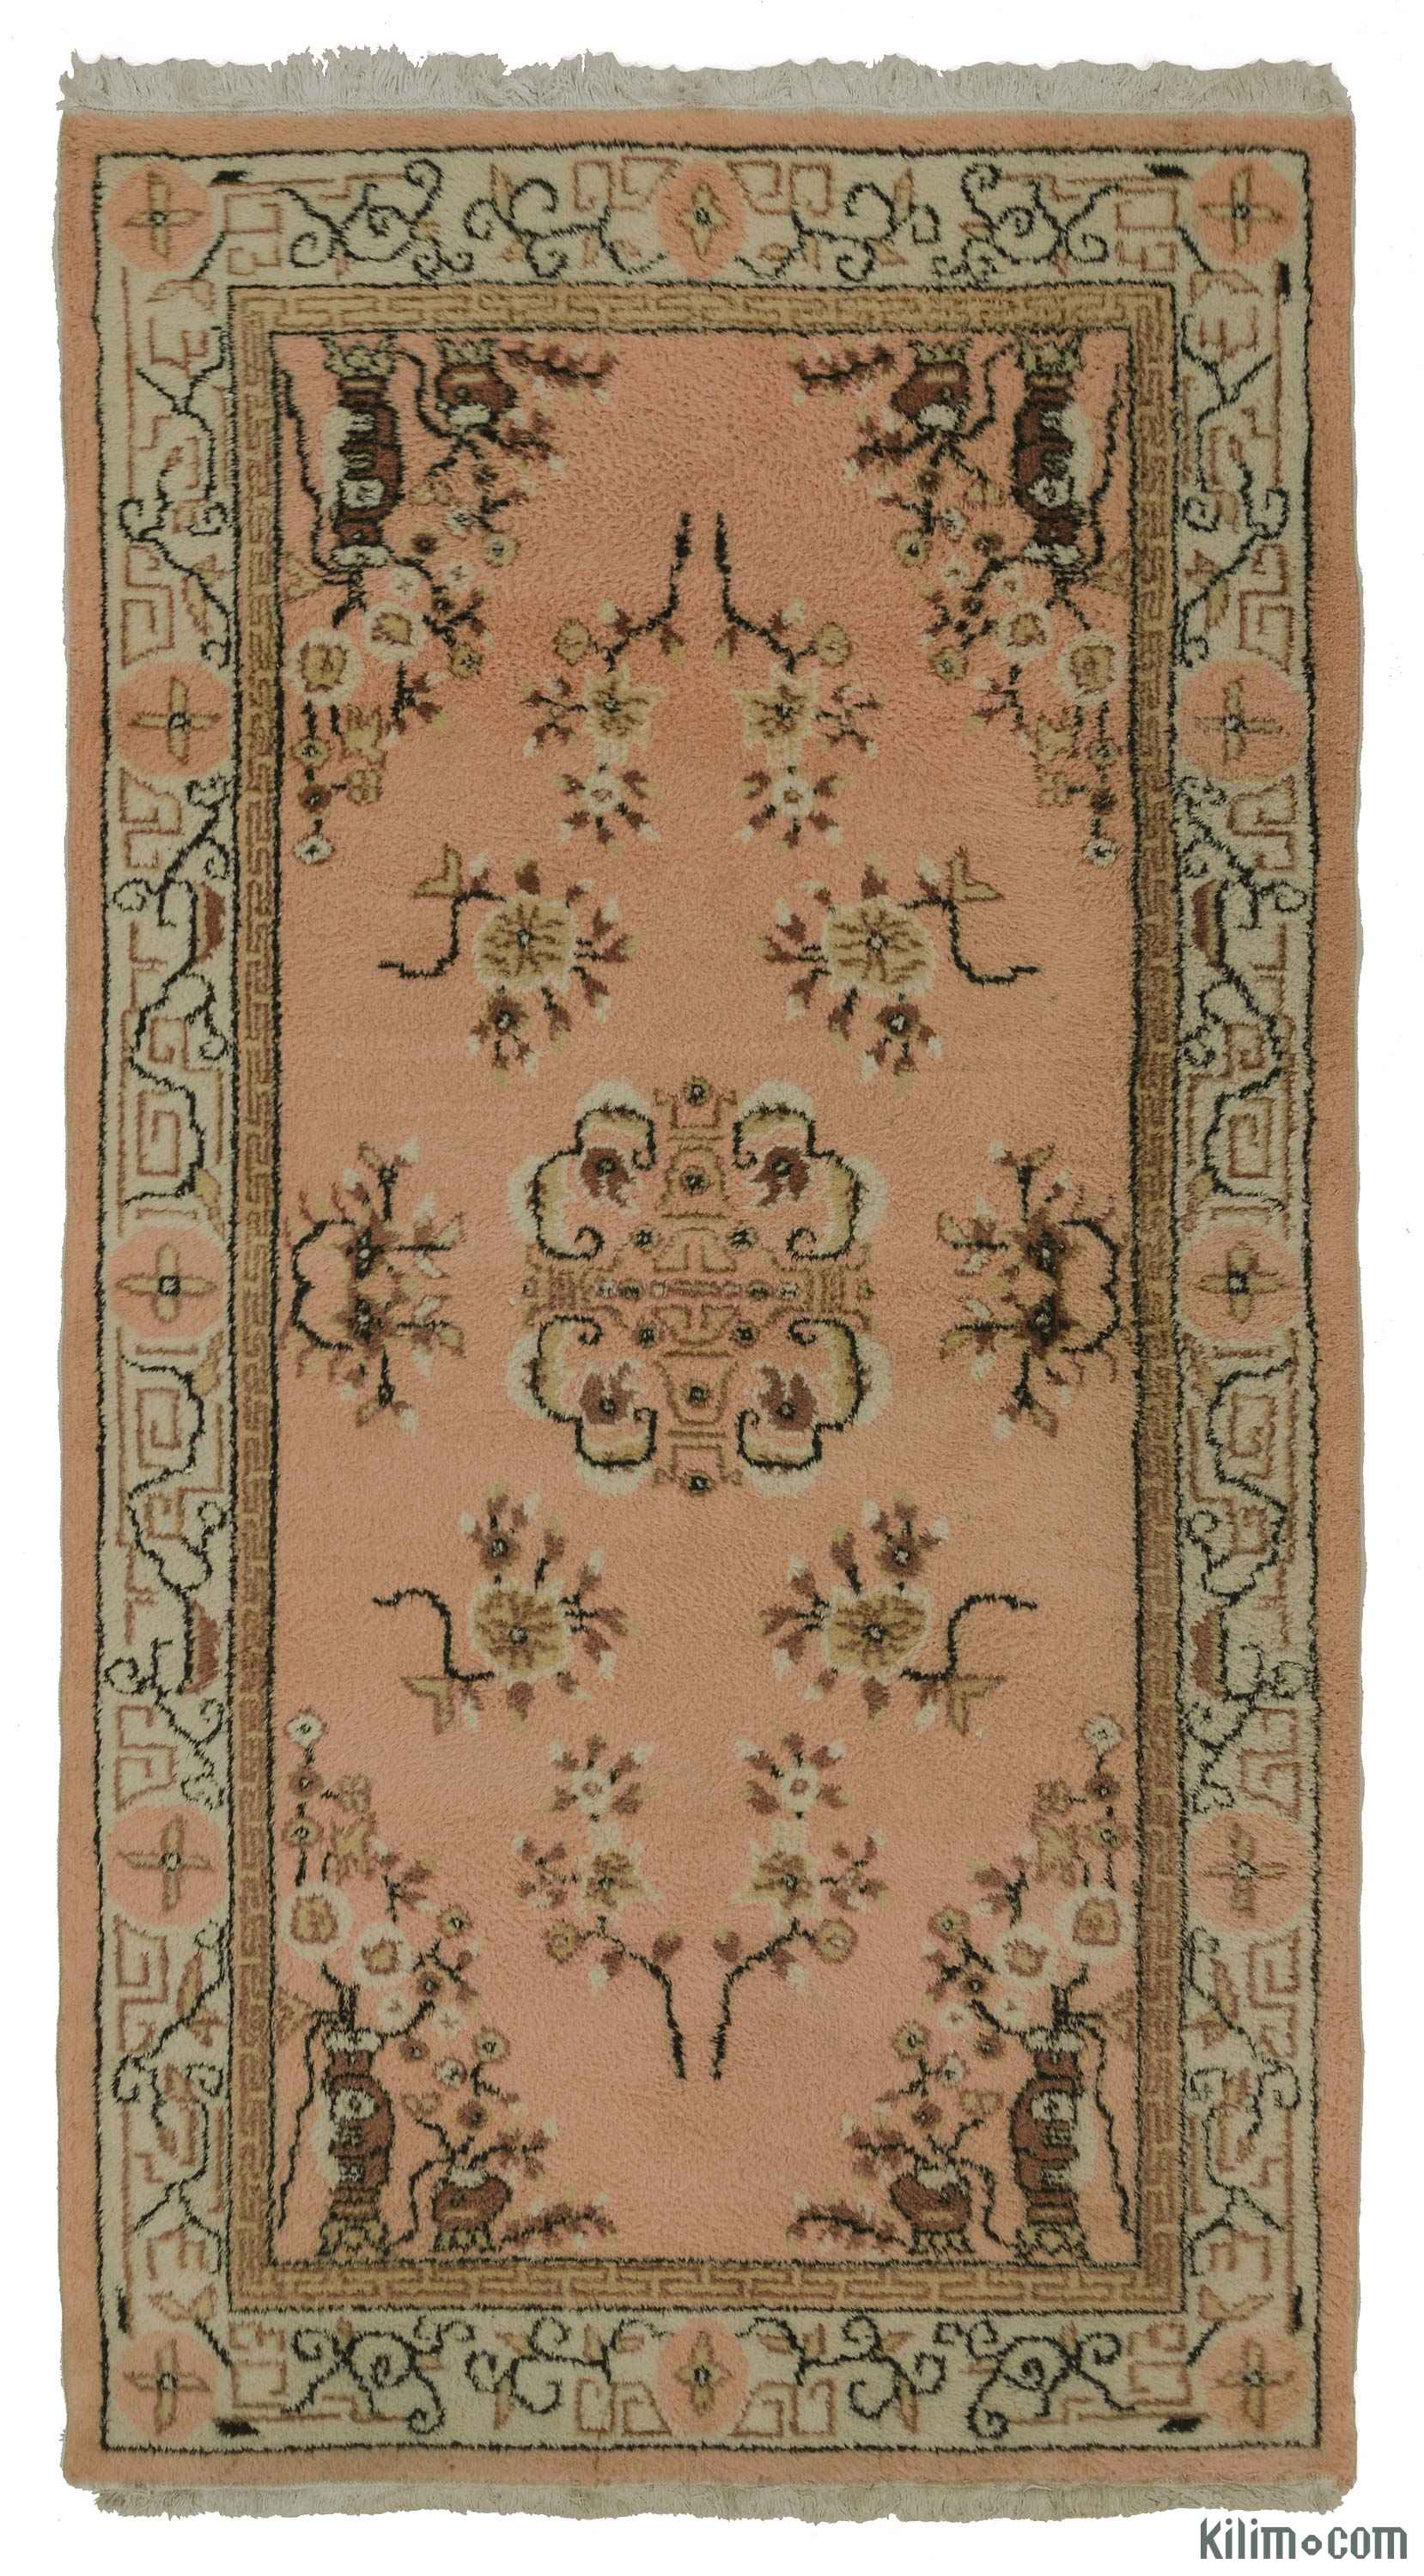 K0018601 Pink Vintage Turkish Rug Kilim The Source For Authentic Rugs Kilims Overdyed Oriental Hand Woven